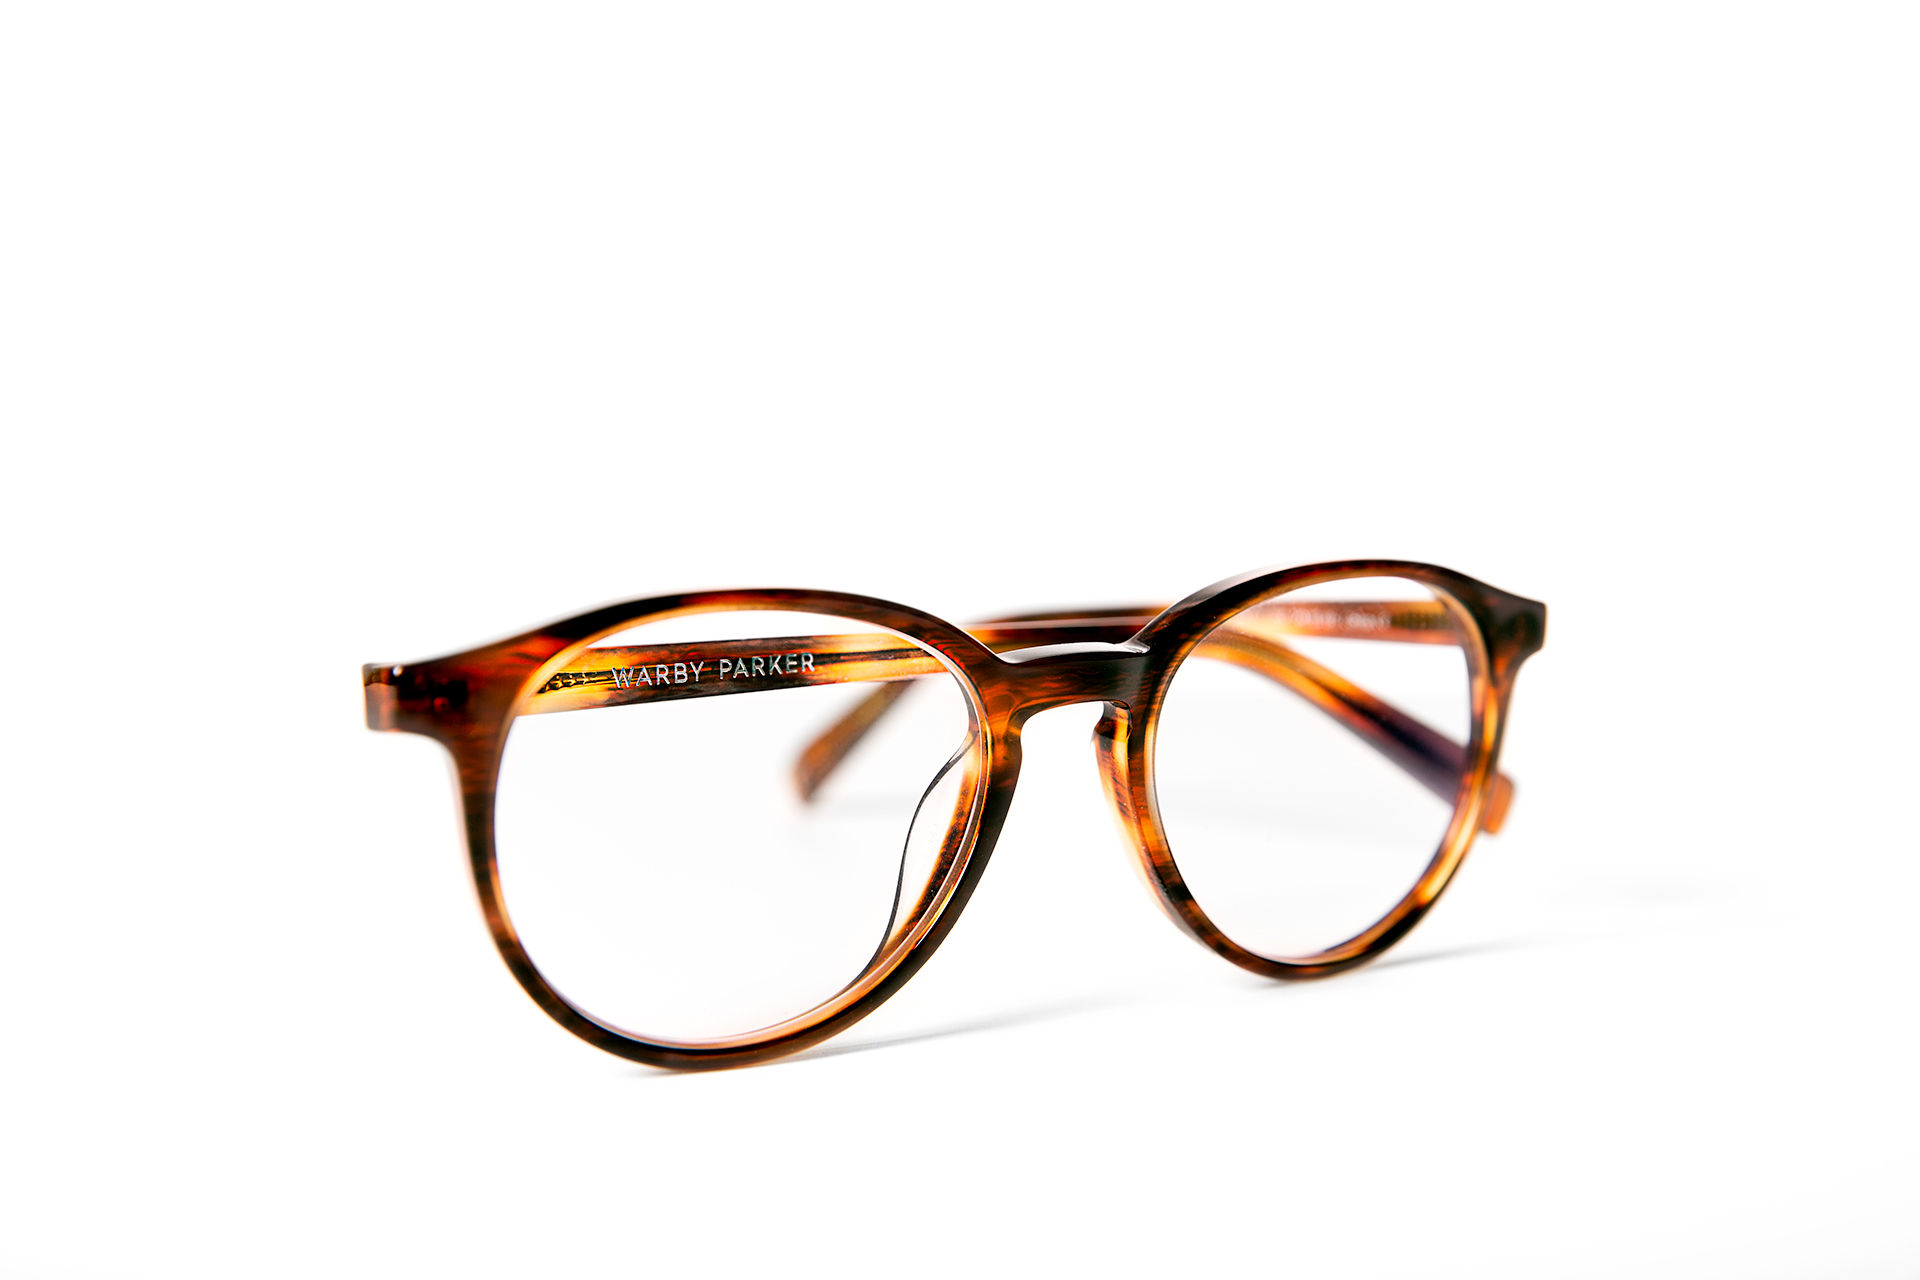 Warby-Parker_product_0215_Test_R1-D1-8